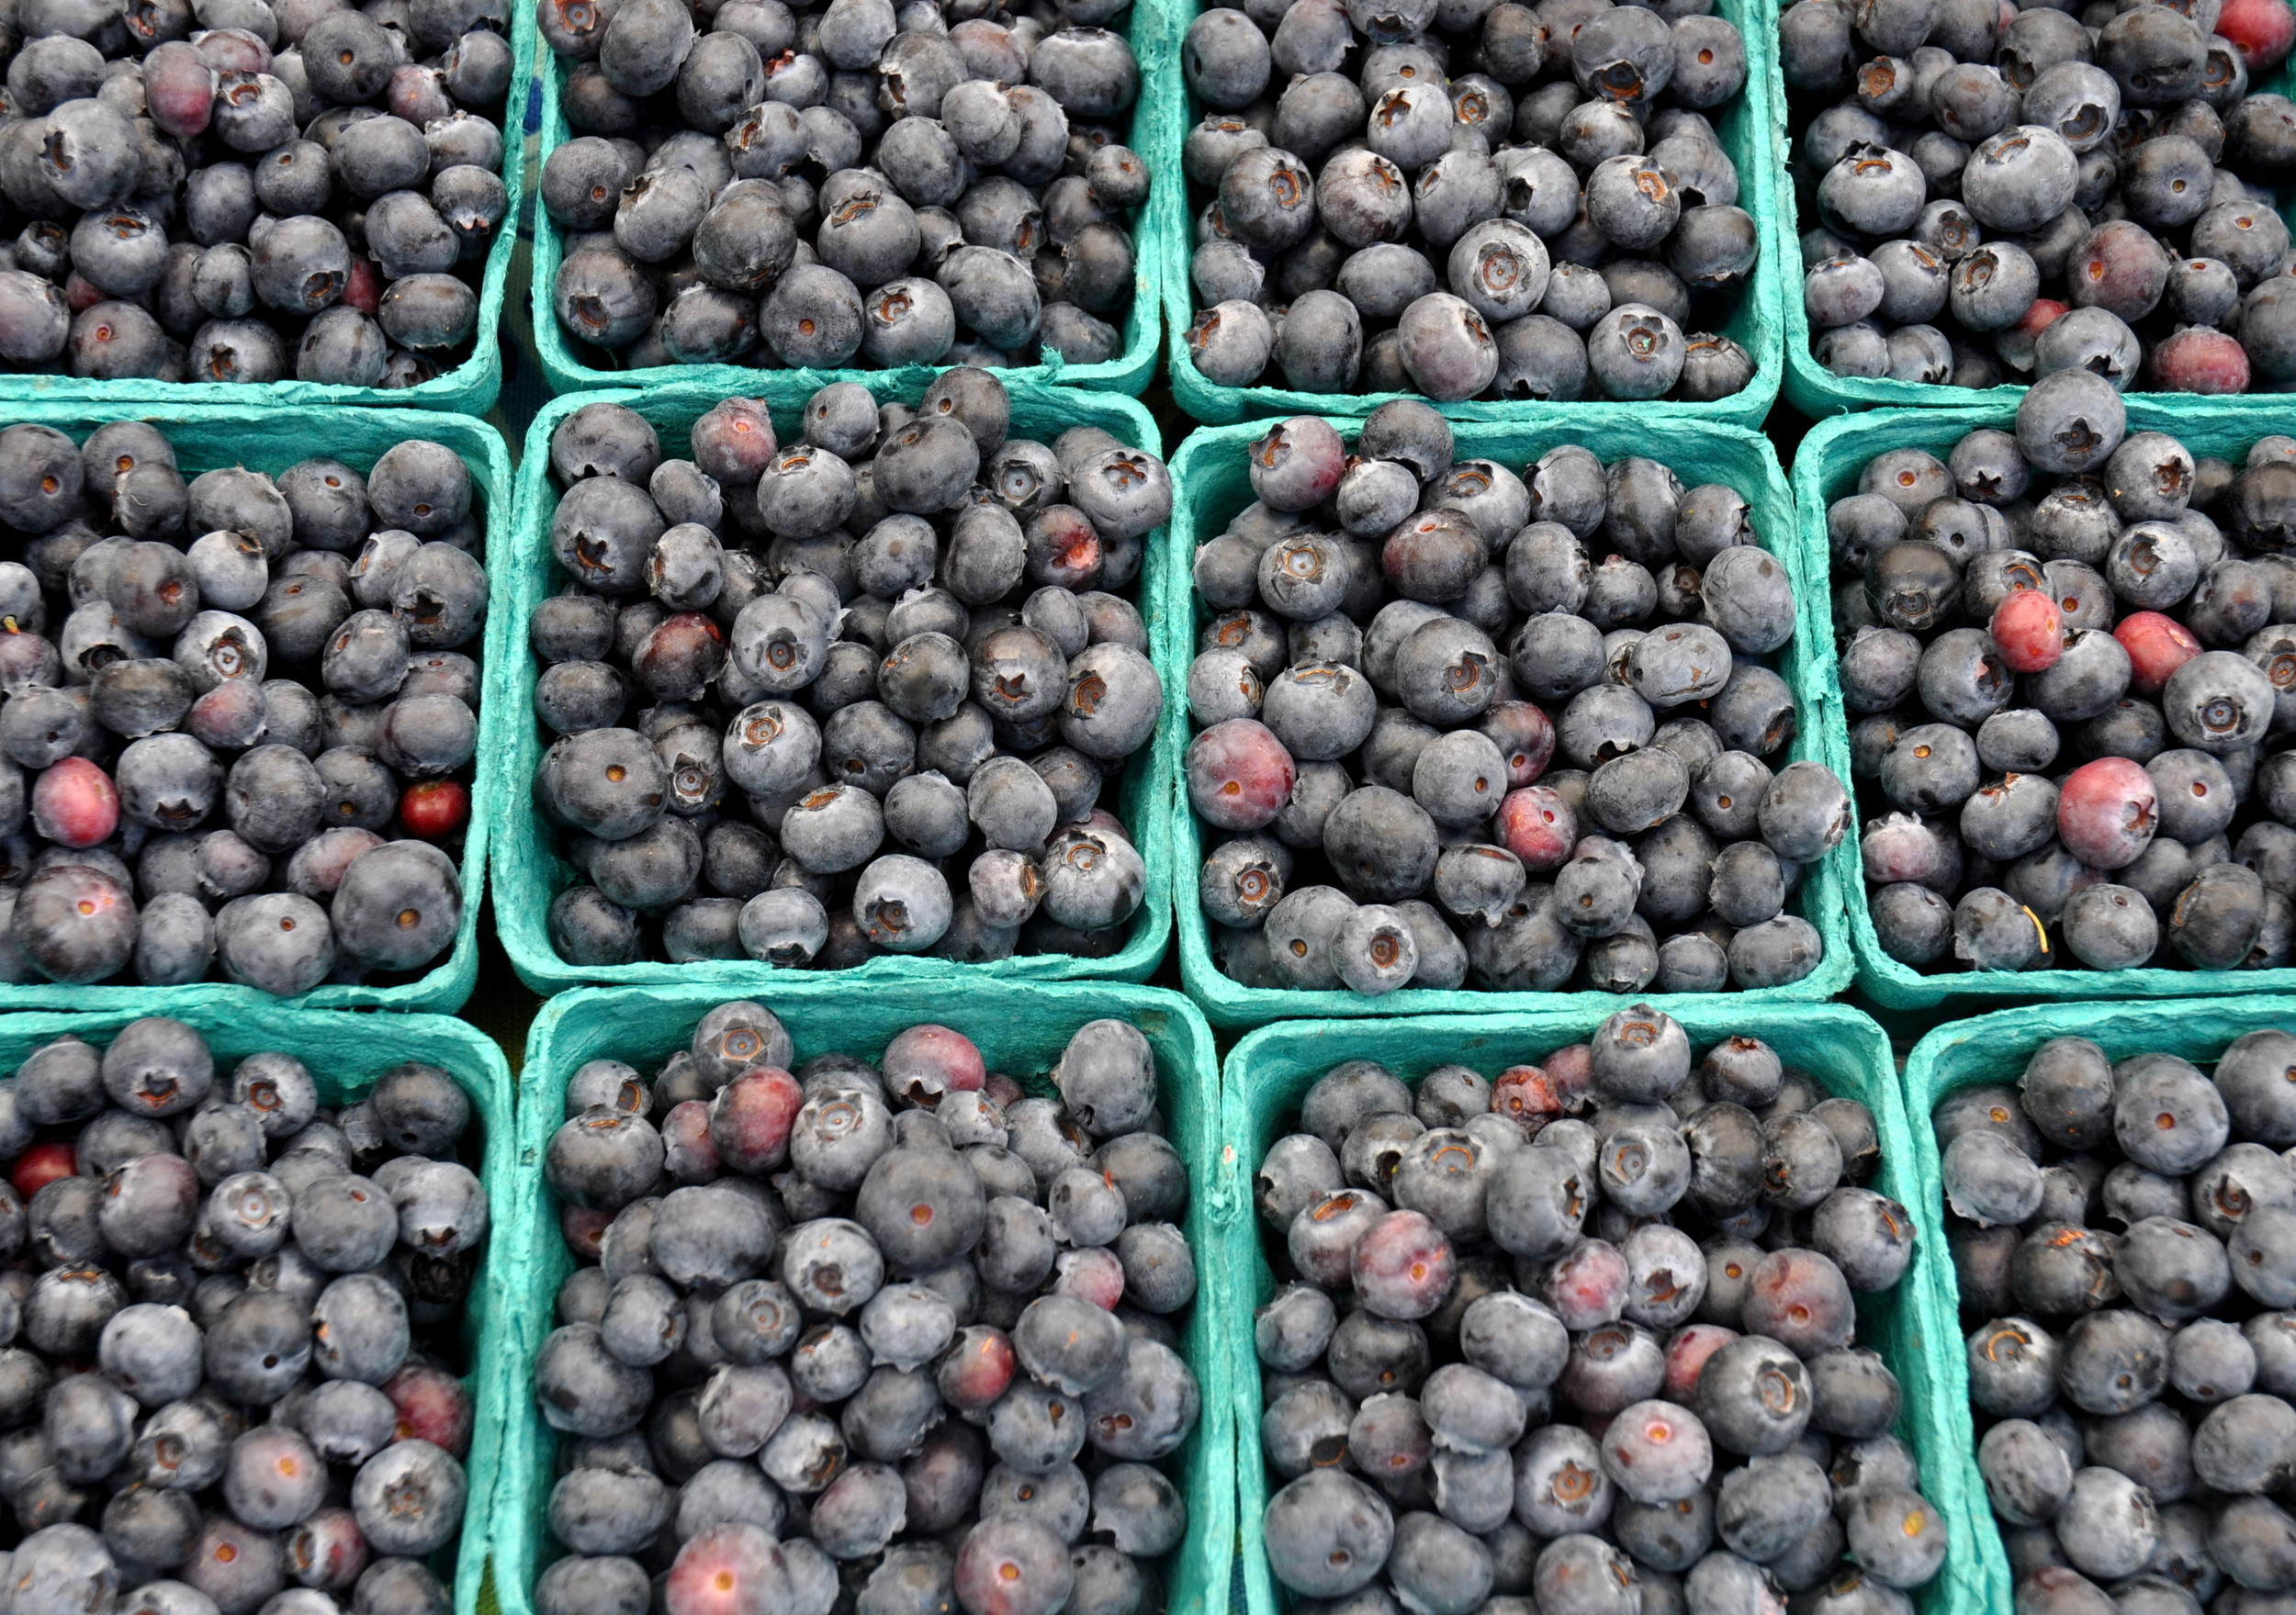 Spartans blueberries from Whitehorse Meadows Farm. Photo copyright 2013 by Zachary D. Lyons.